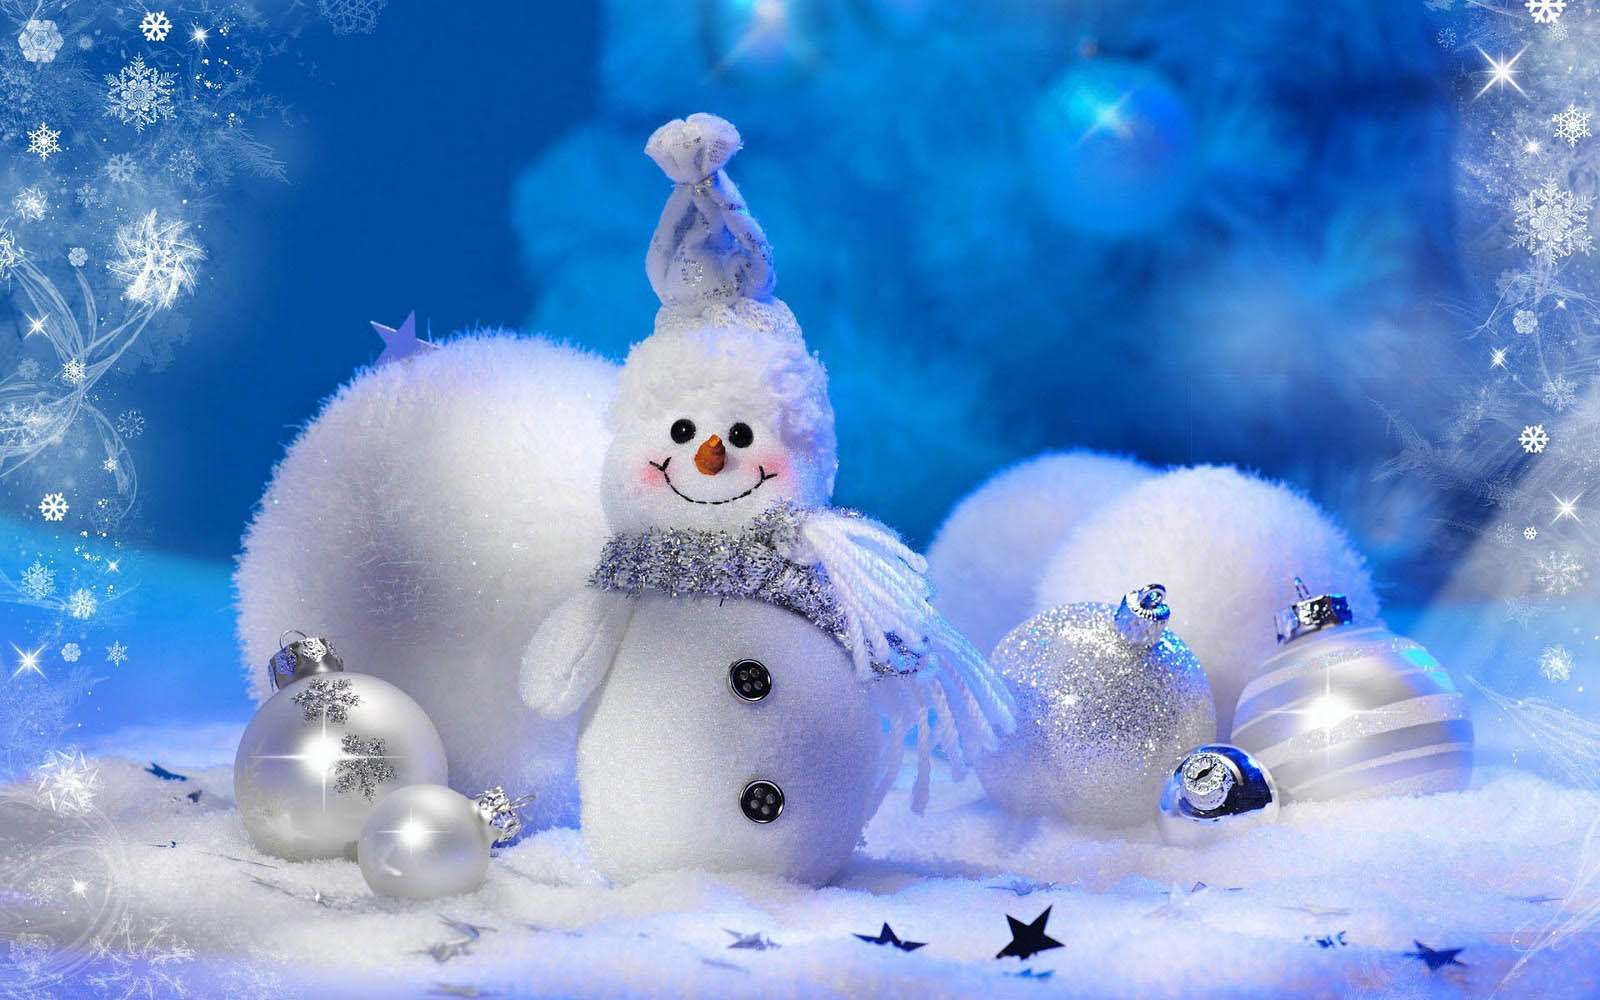 wallpapers Snowman Wallpapers 1600x1000